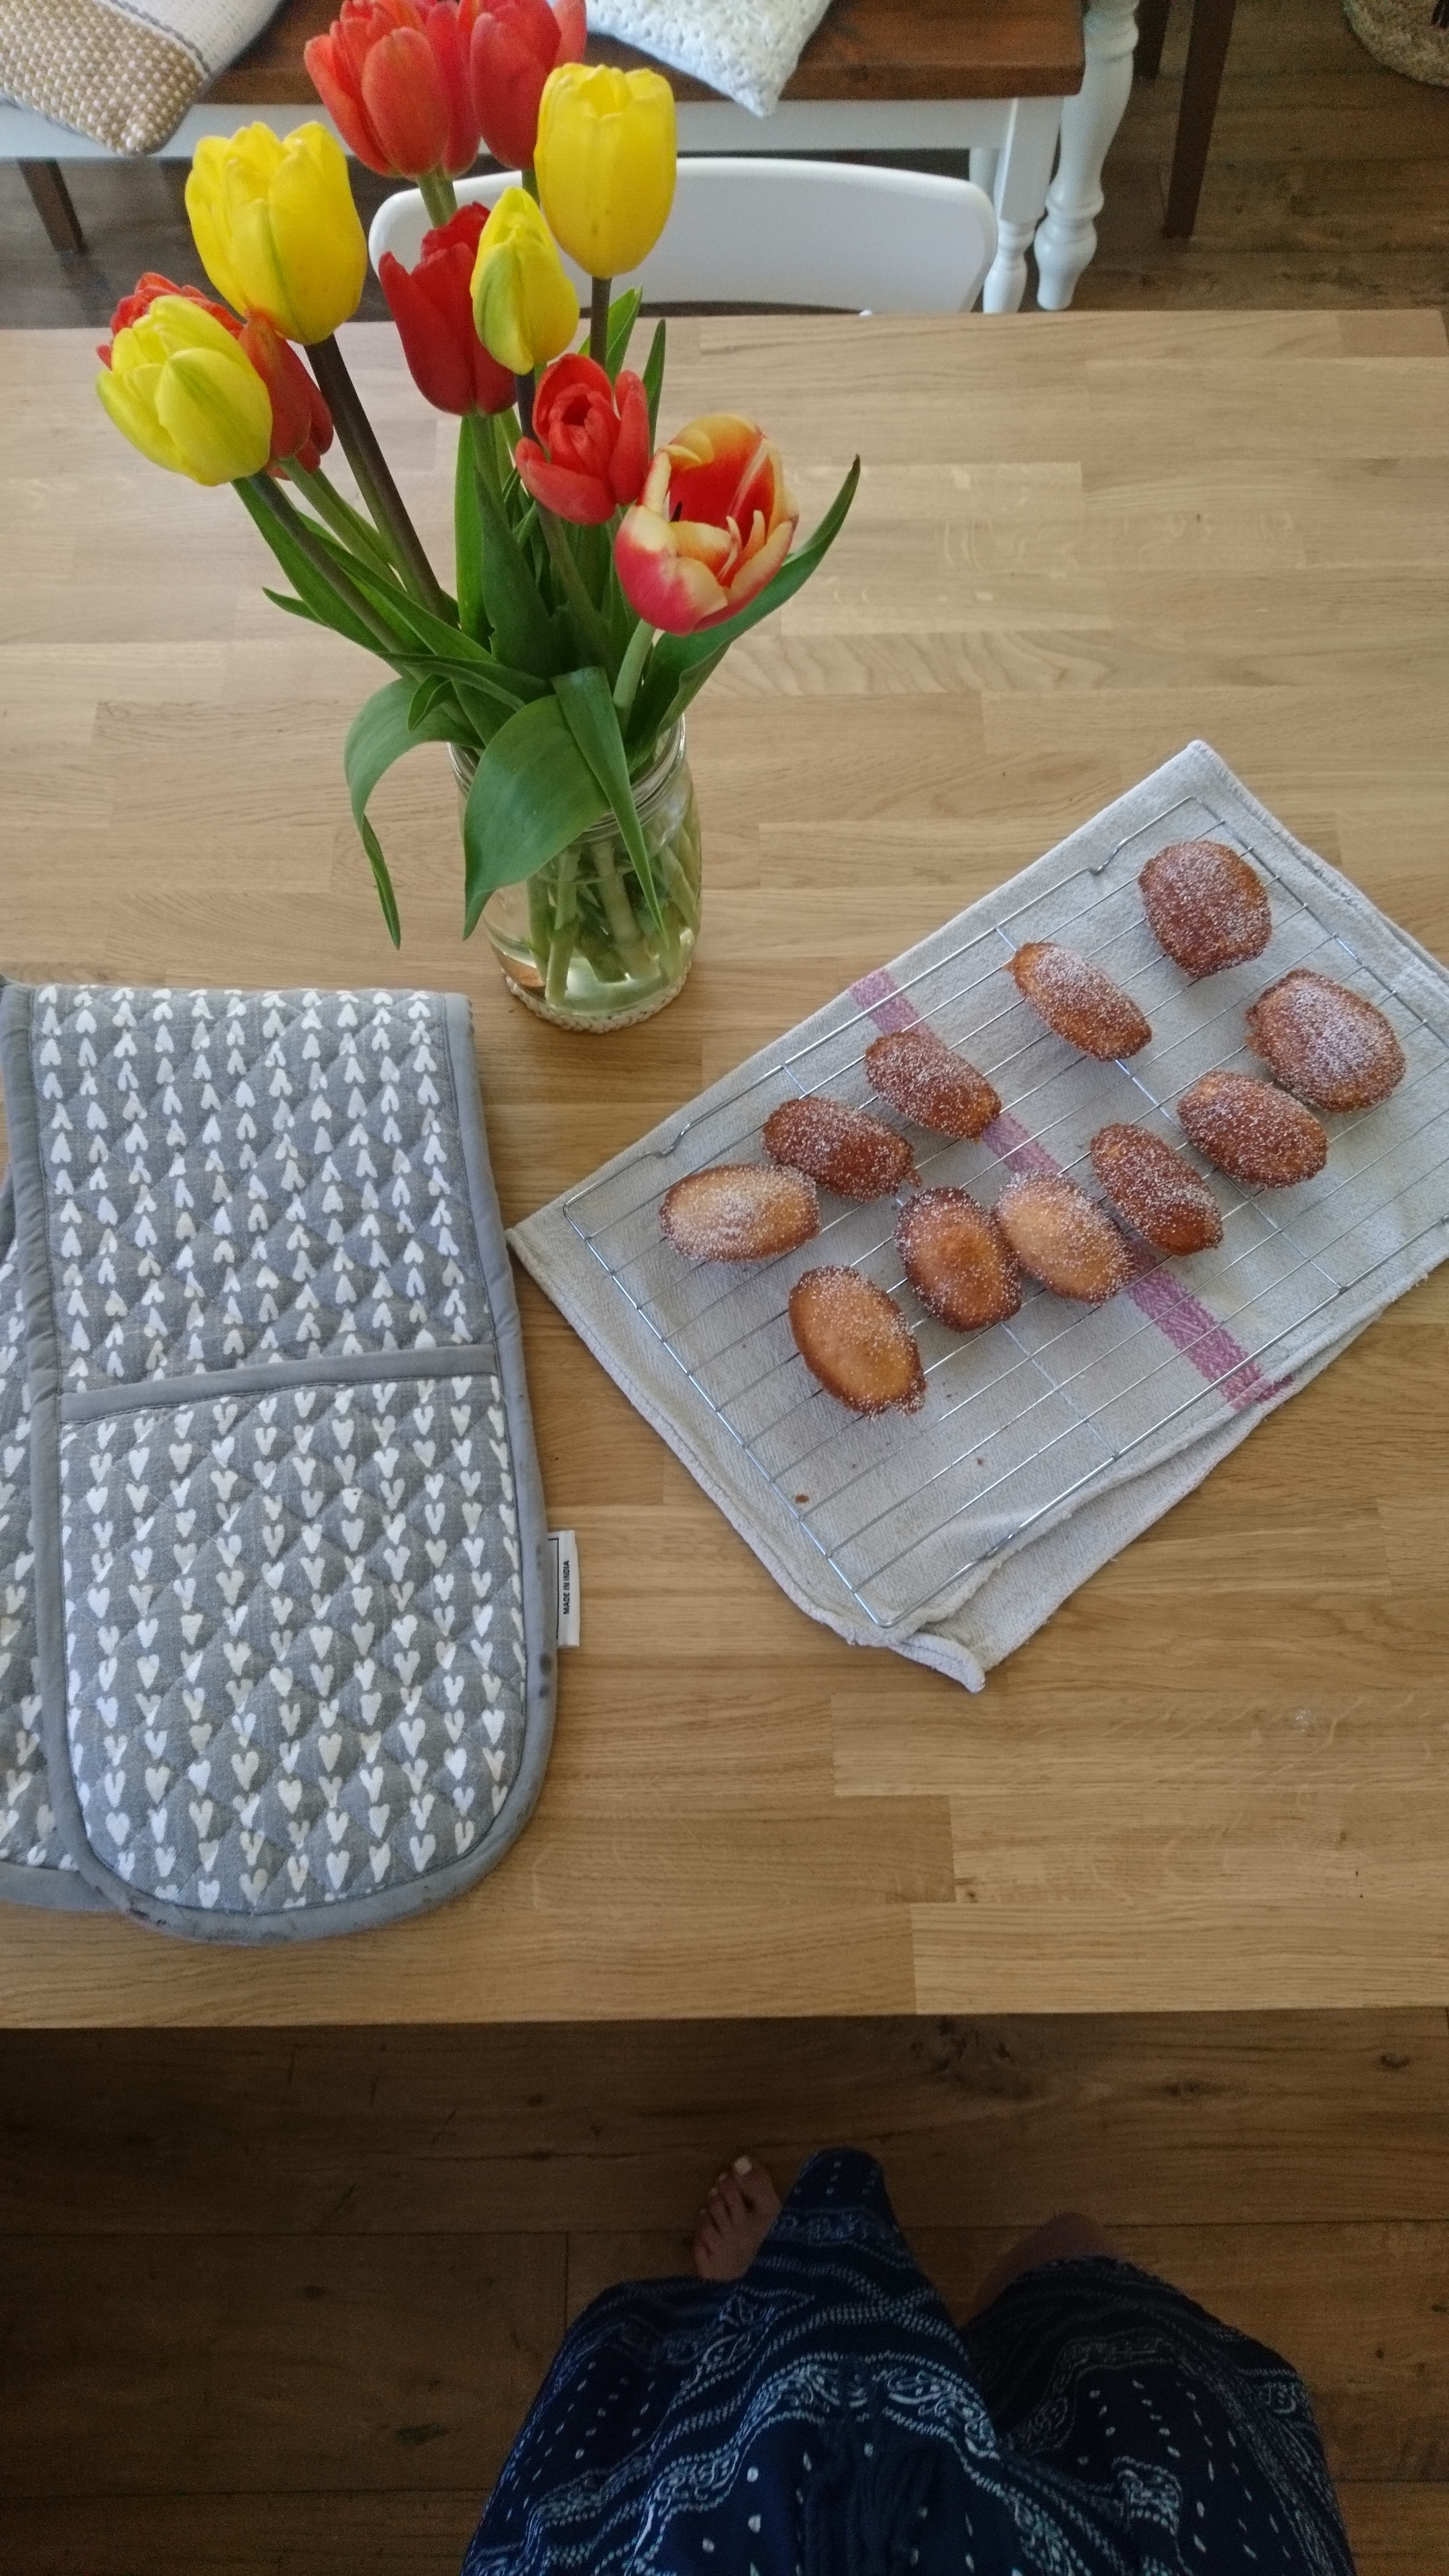 country living interior blogger baking madeleines